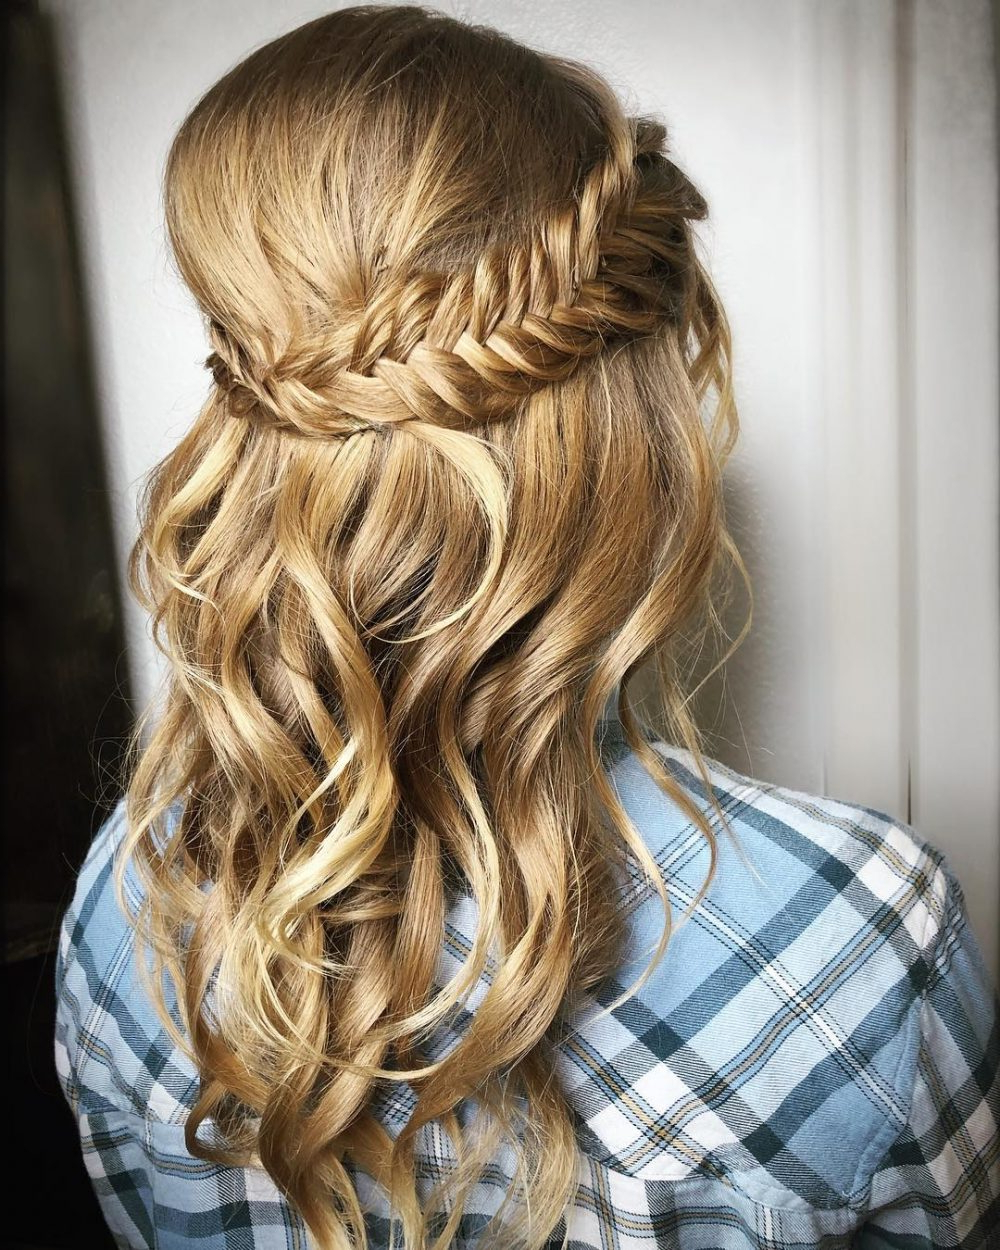 Well Known Half Long Half Medium Hairstyles Throughout Half Up Half Down Prom Hairstyles – Pictures And How To's (View 18 of 20)